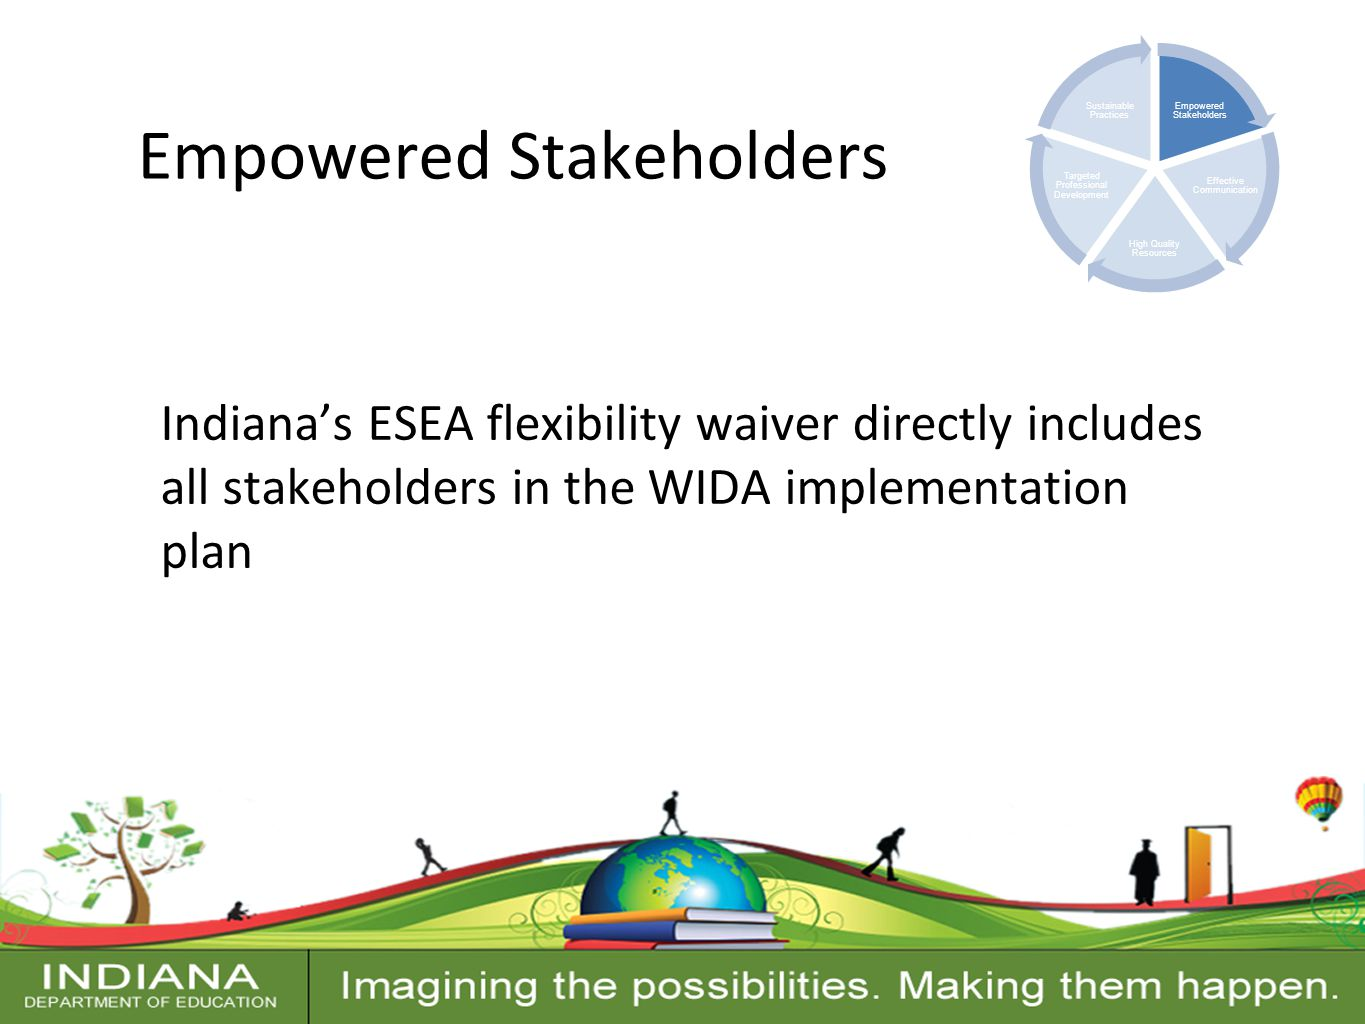 Contact Information Empowered Stakeholders Indiana's ESEA flexibility waiver directly includes all stakeholders in the WIDA implementation plan Empowered Stakeholders Effective Communication High Quality Resources Targeted Professional Development Sustainable Practices